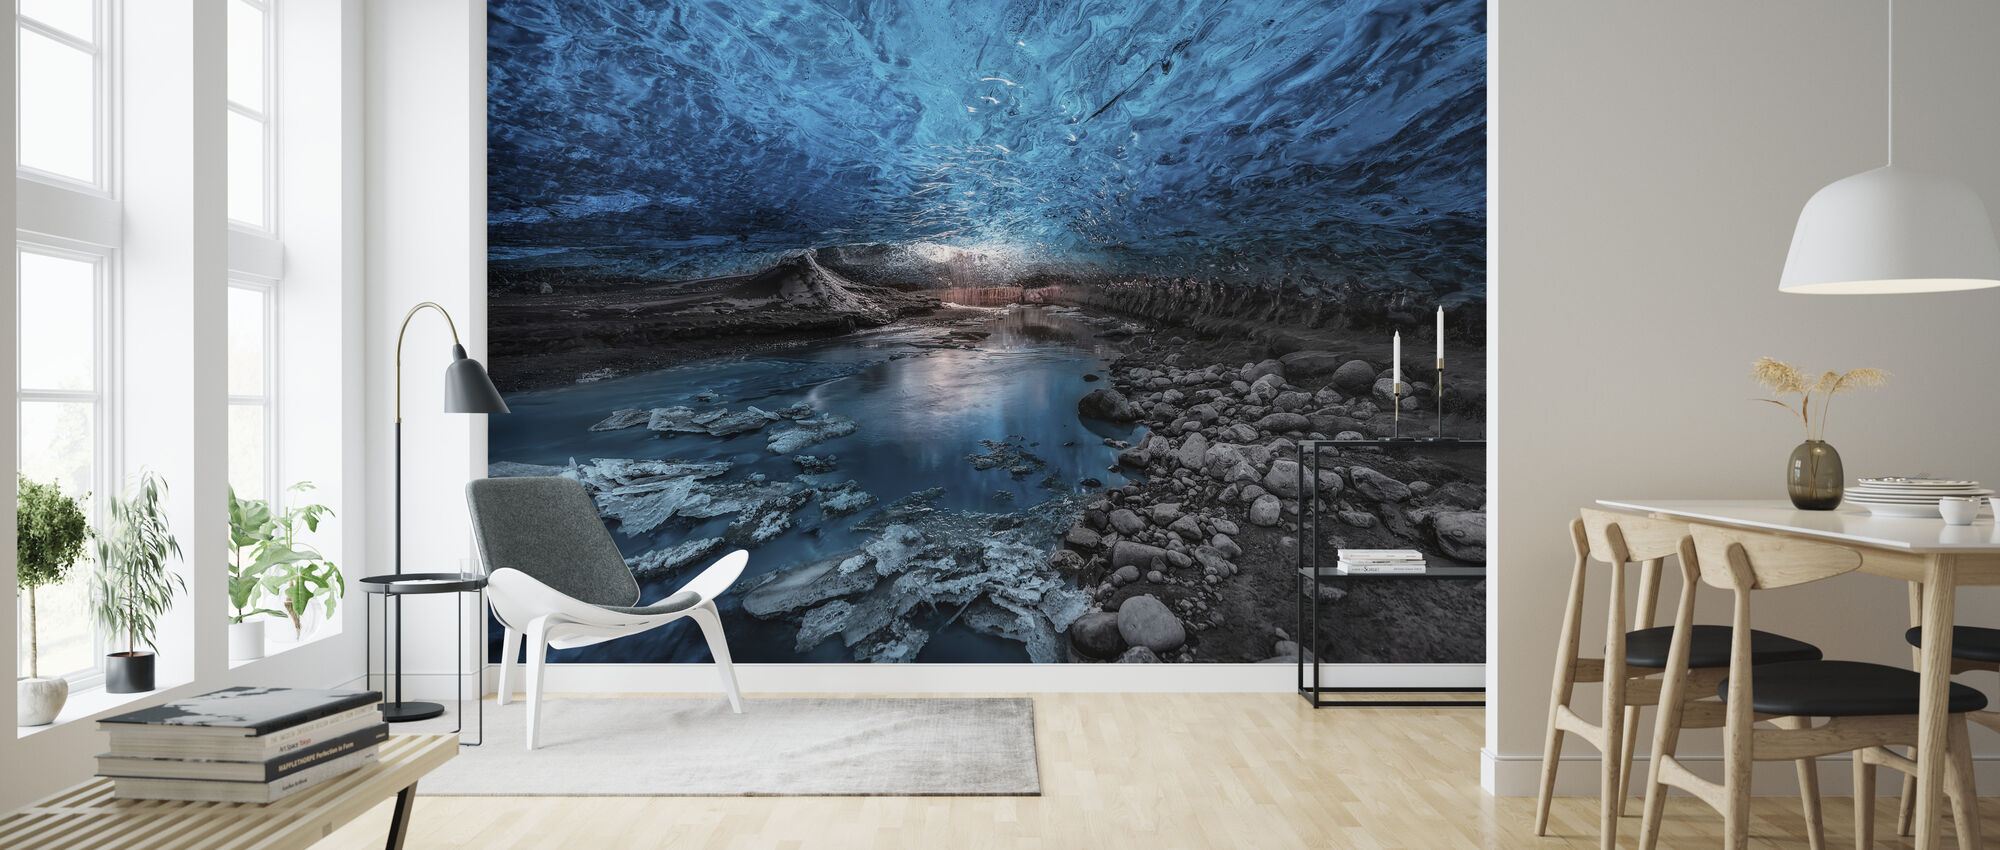 Ice Cave - Wallpaper - Living Room